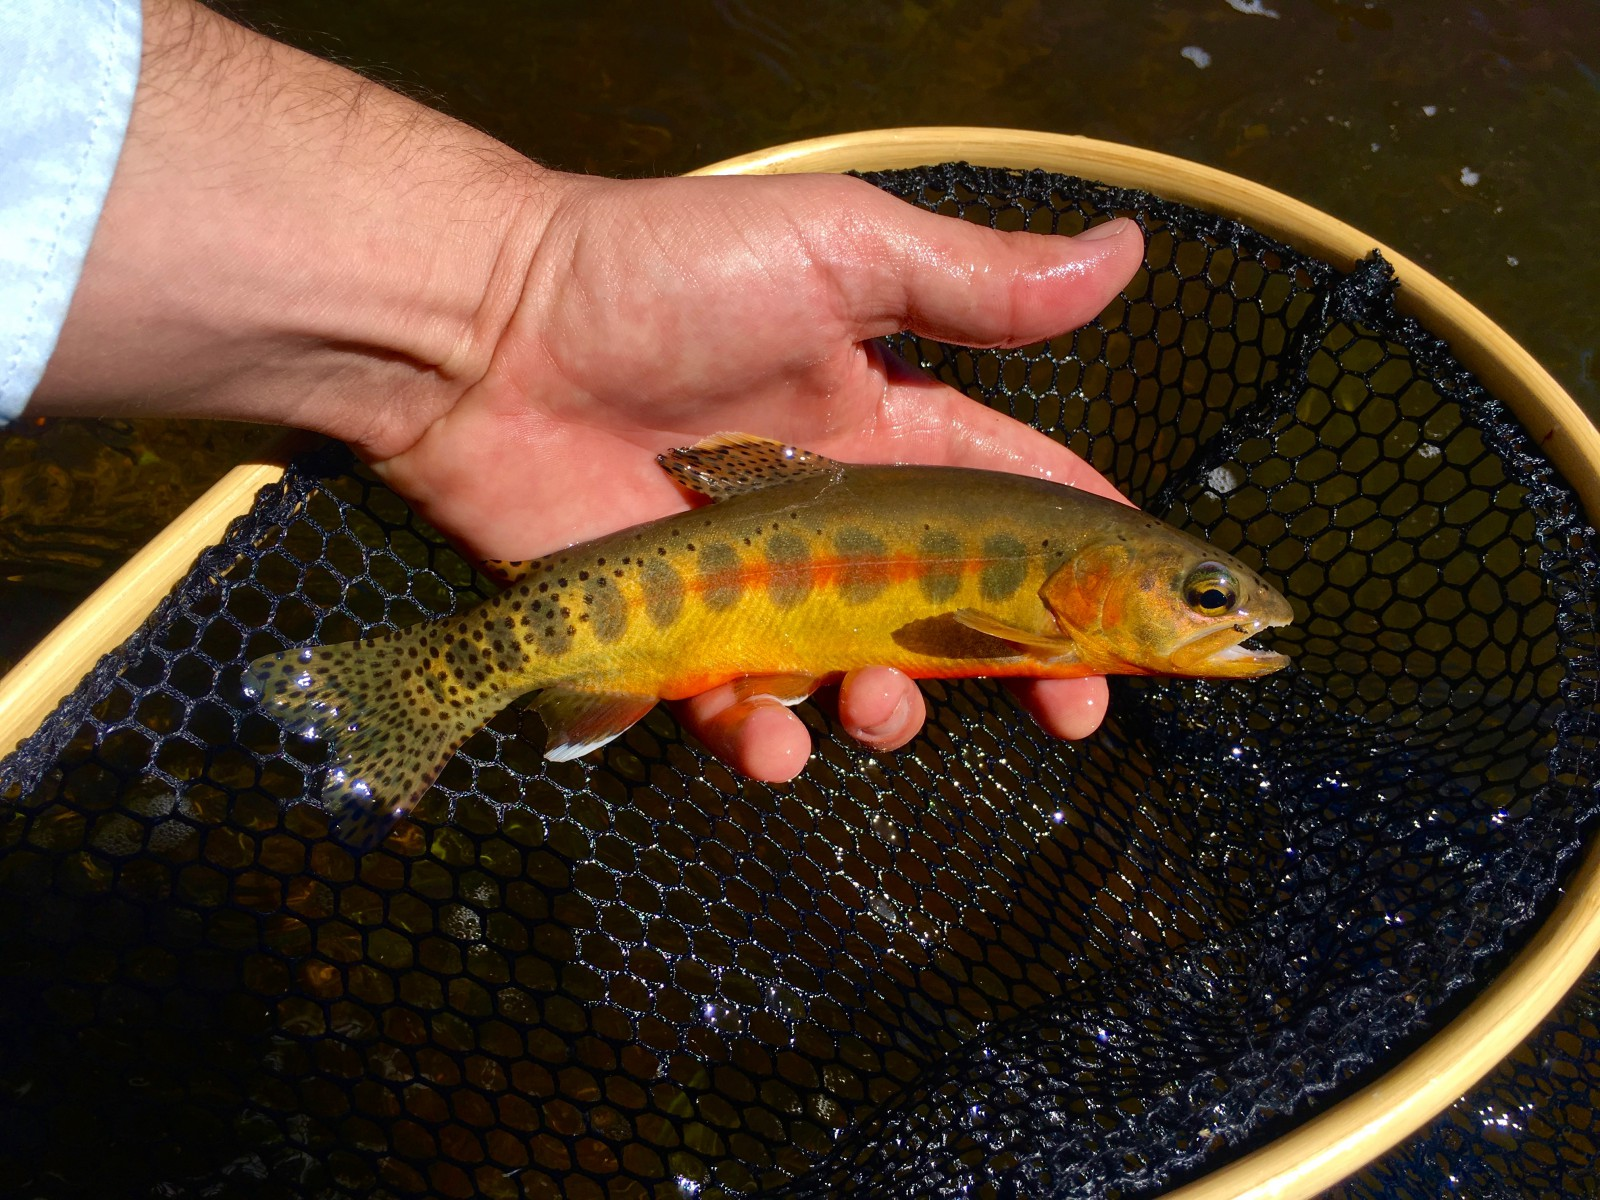 California Golden Trout photo courtesy of Native Trout Addict